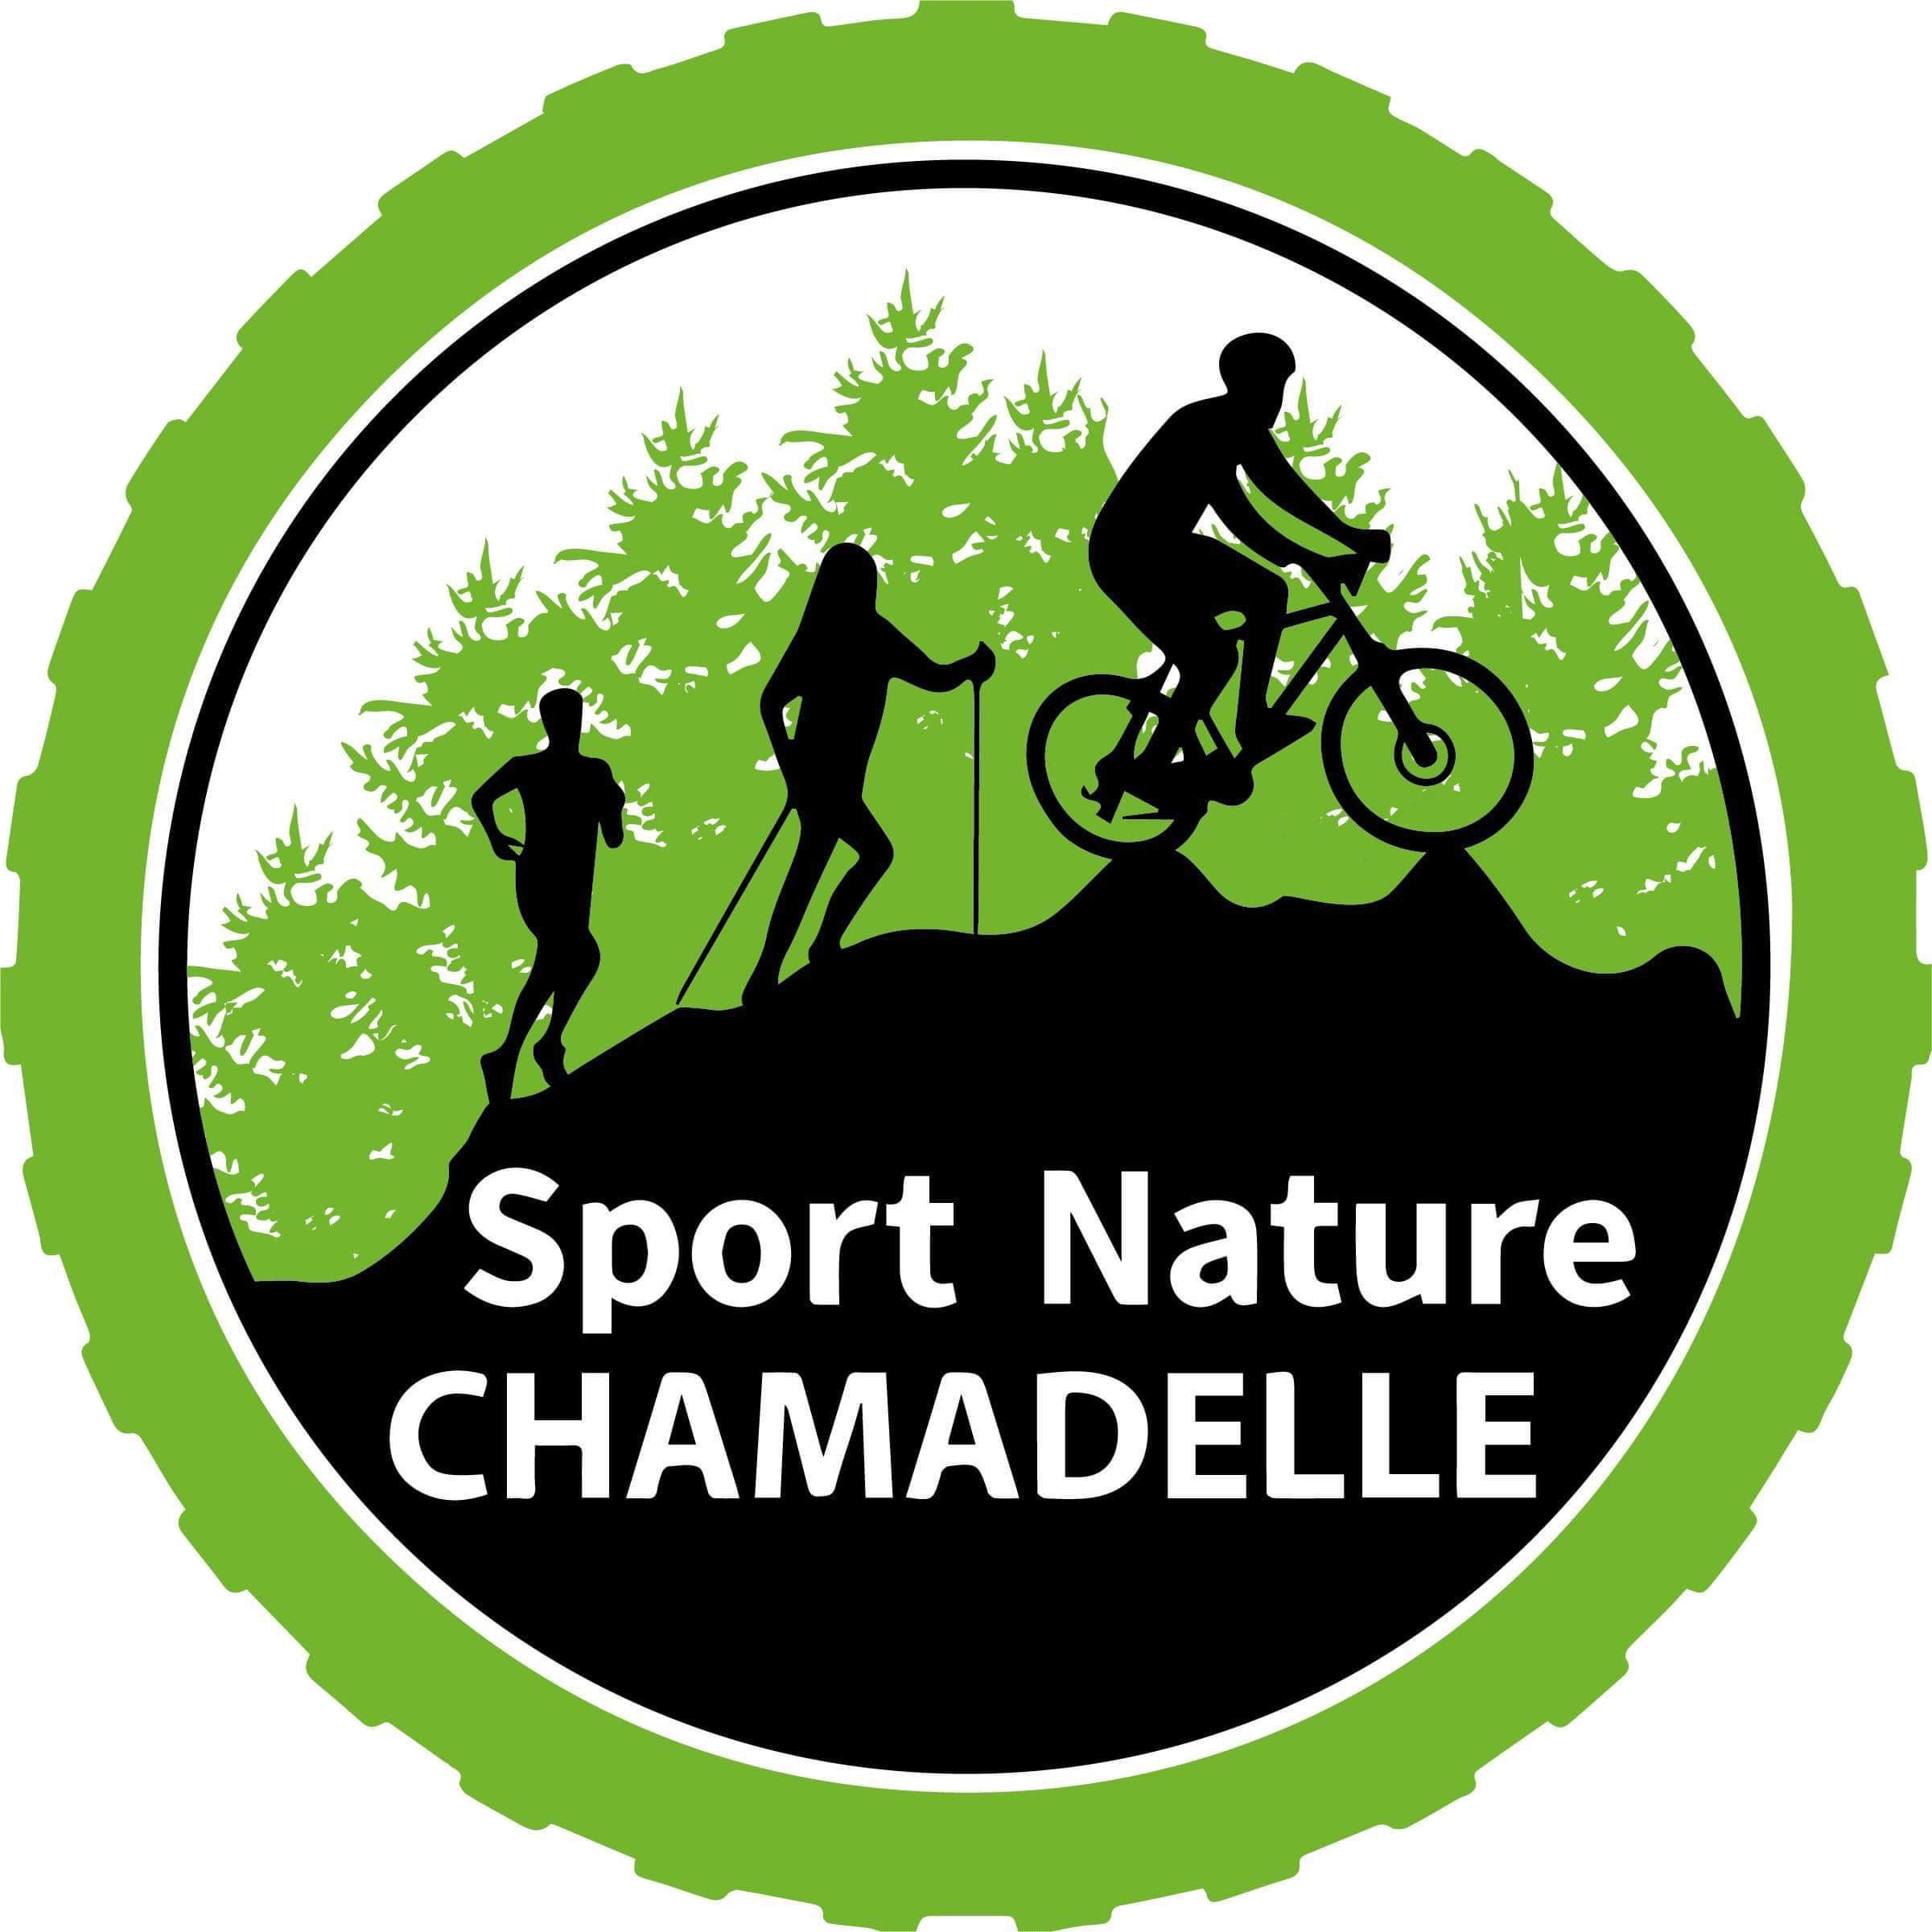 SPORT NATURE CHAMADELLE